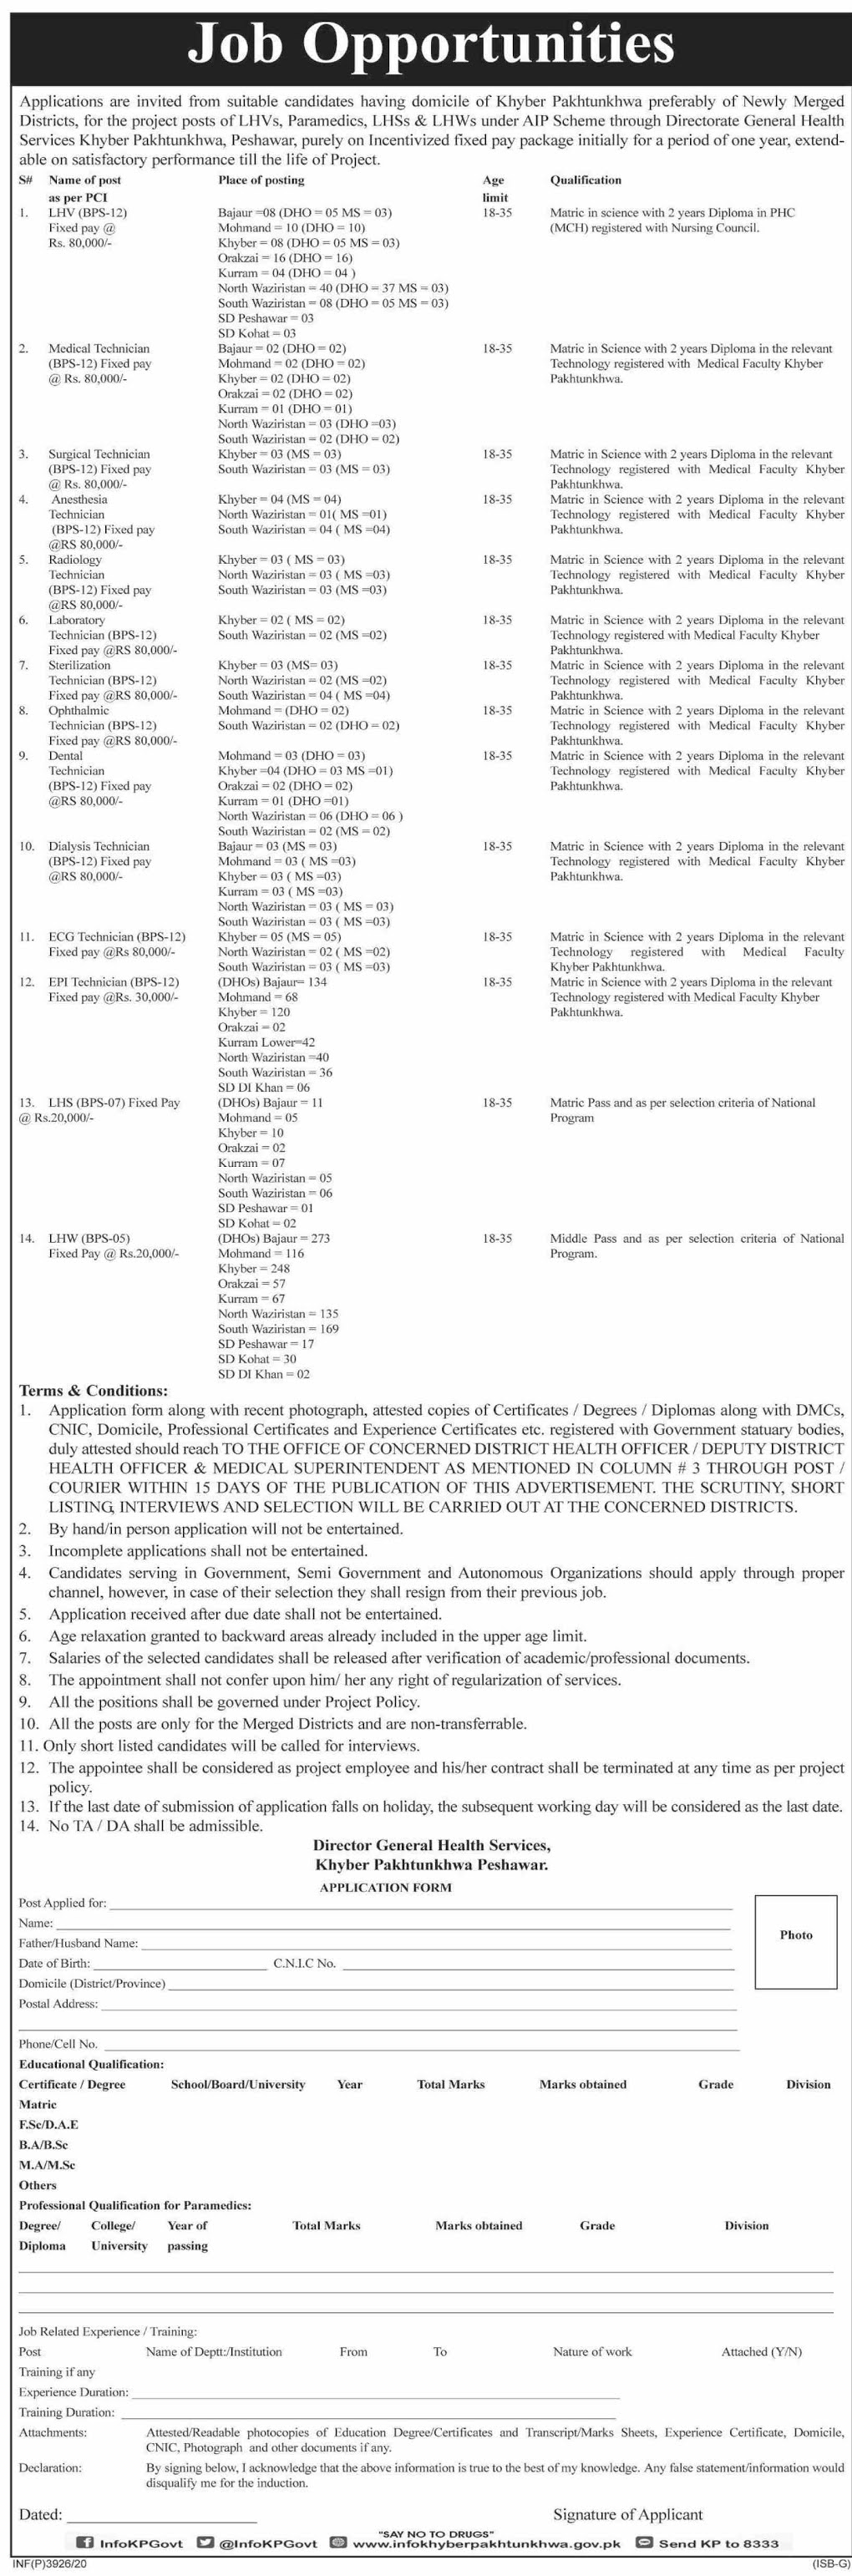 Directorate General Health Services latest Jobs Advertisement